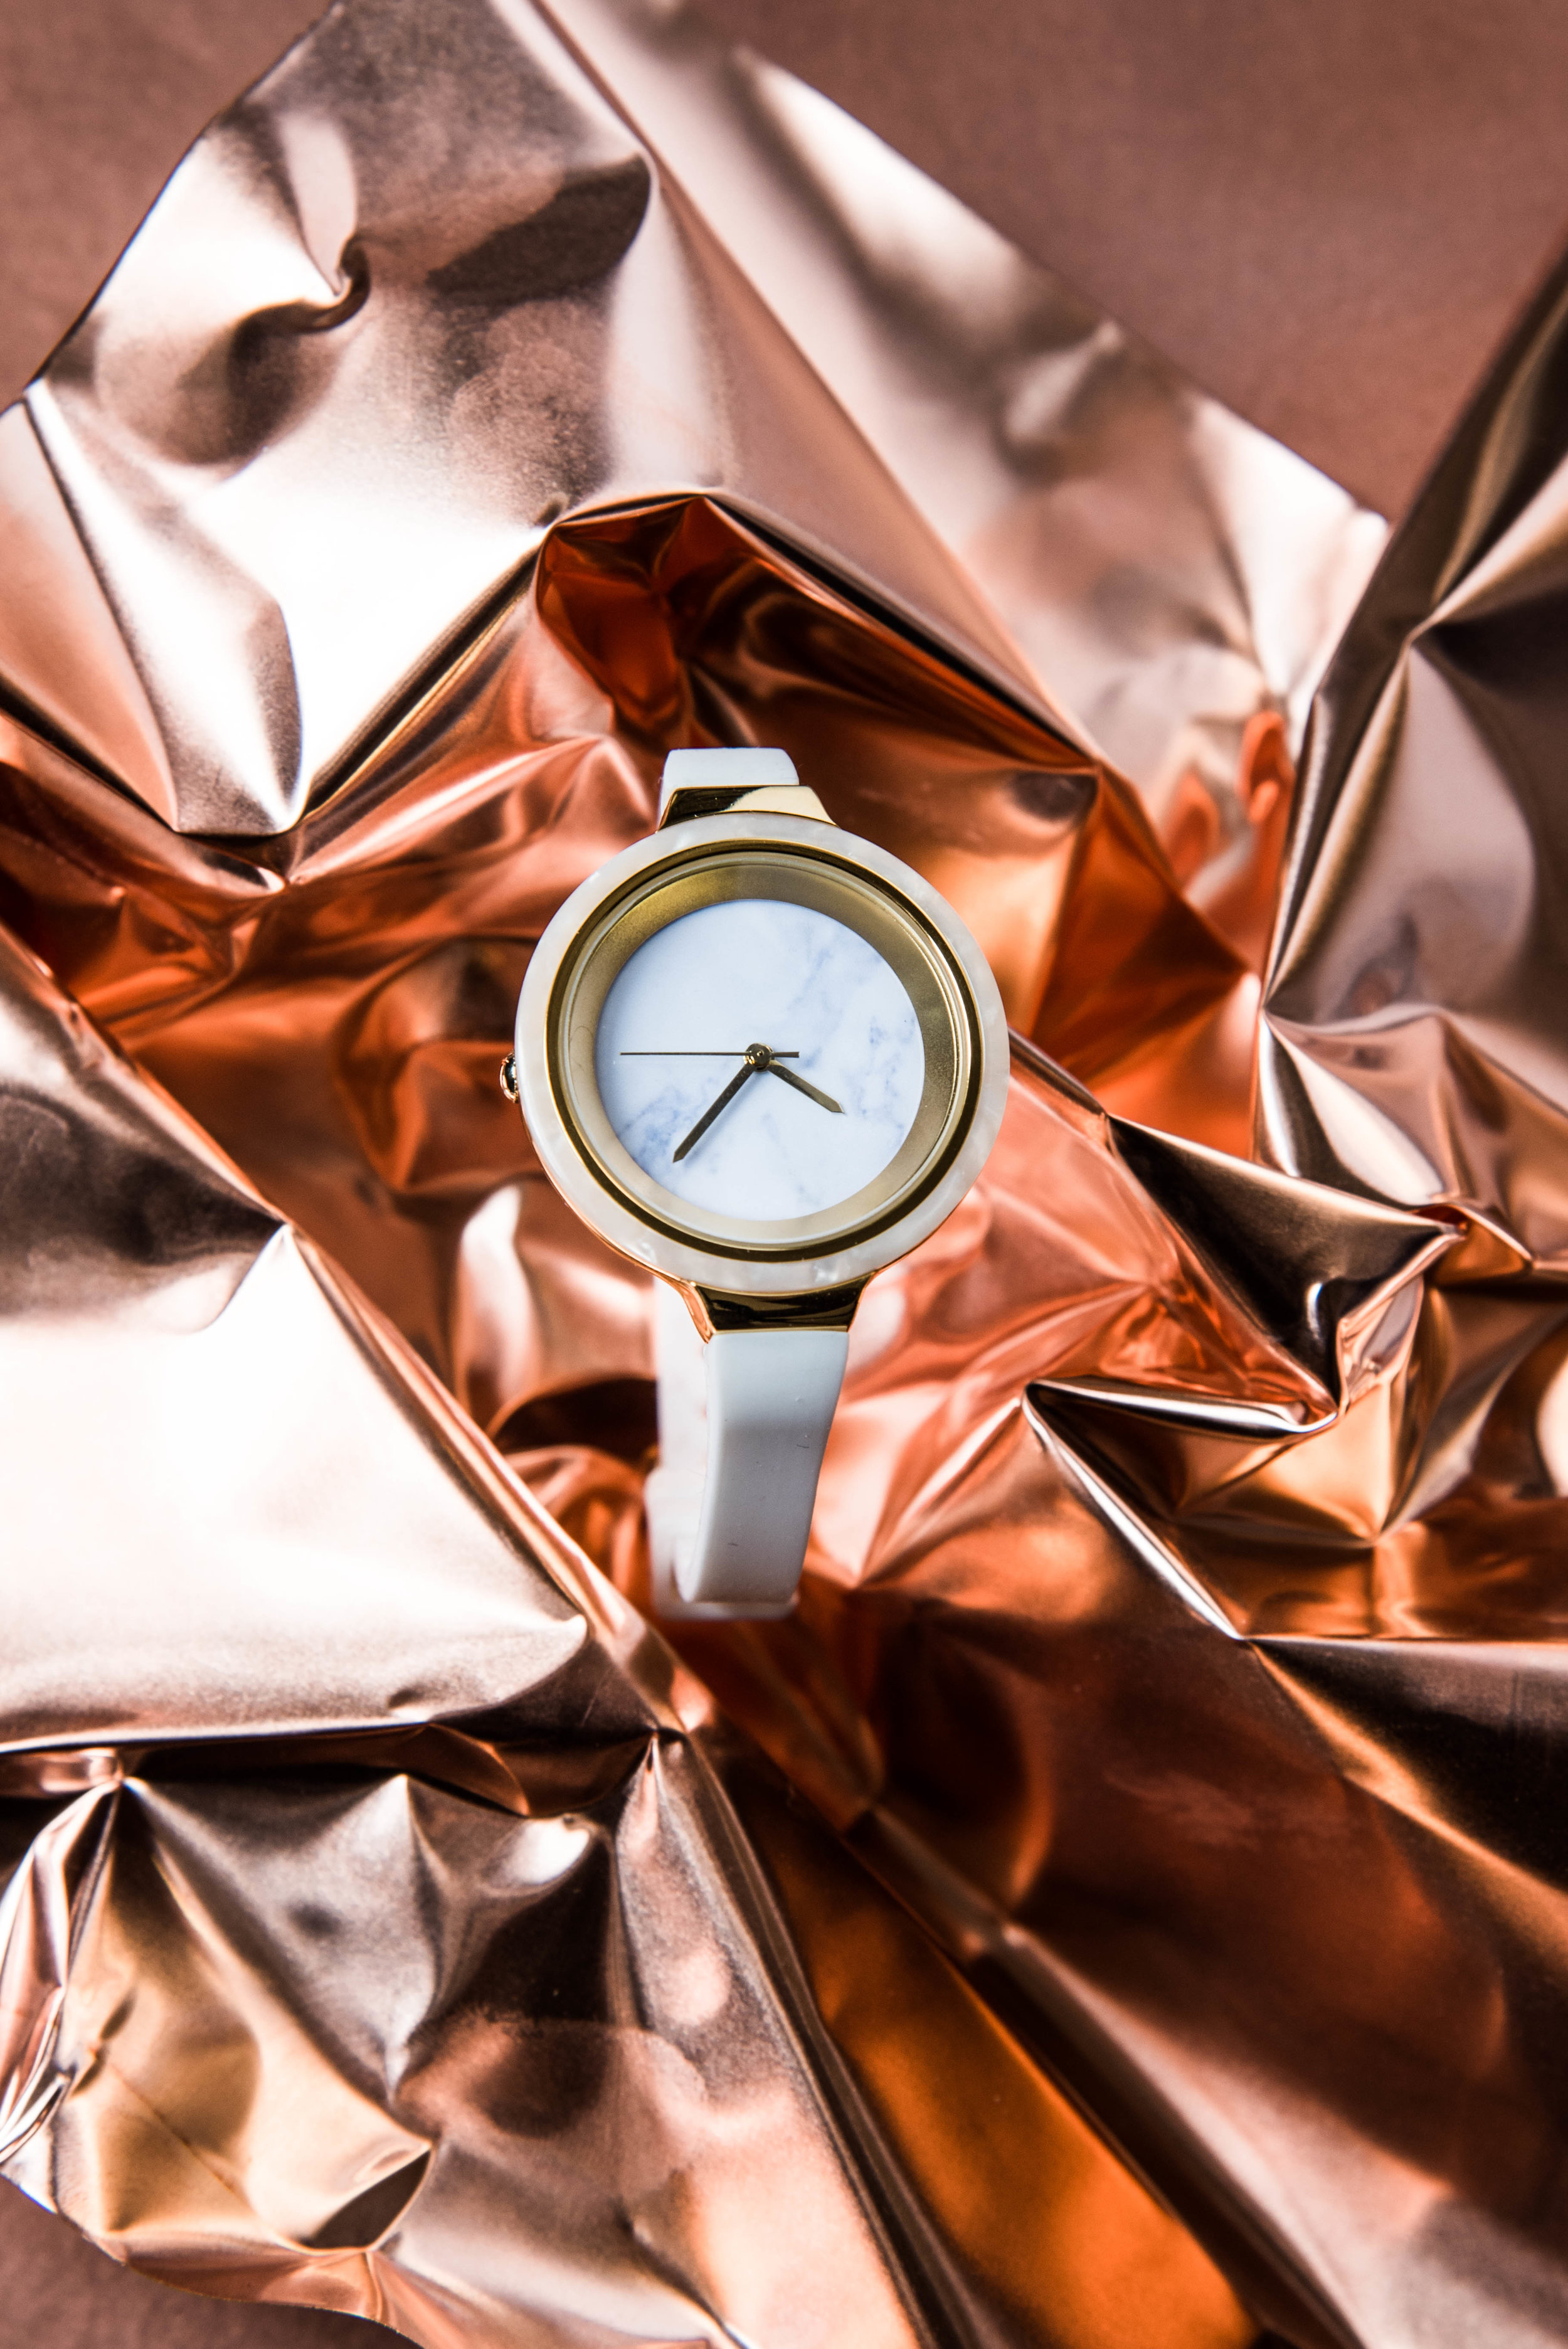 ROSE & IVY Journal Gift Guide The Mood Copper & White RumbaTime Orchard Marble Snow Patrol Watch